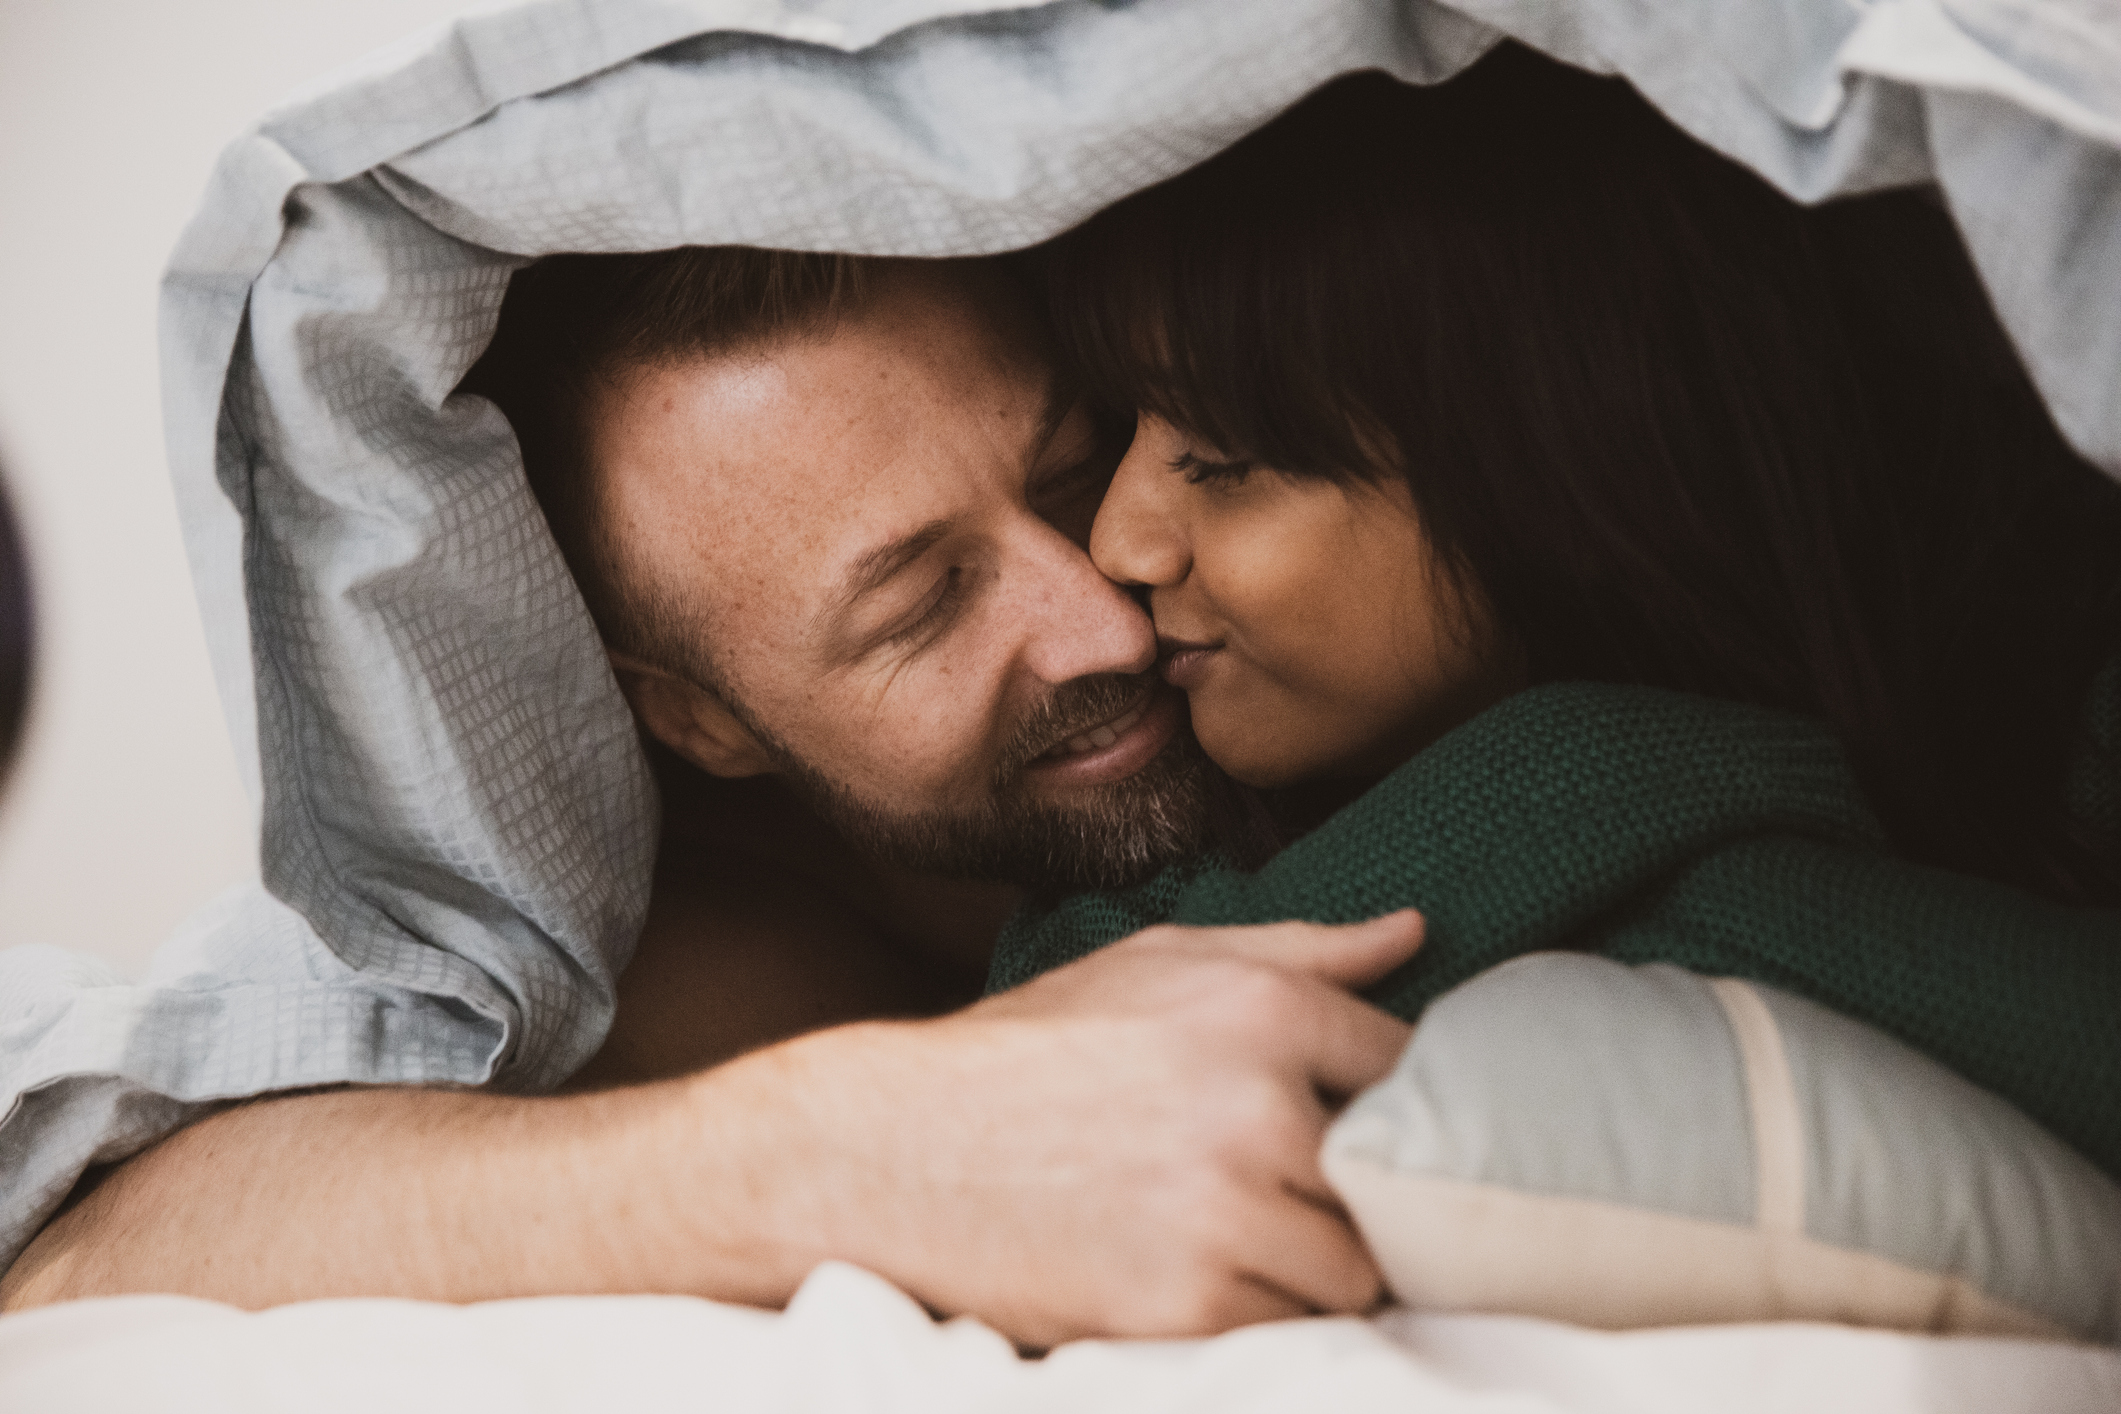 An interracial couple smiling and kissing under bedsheet covers